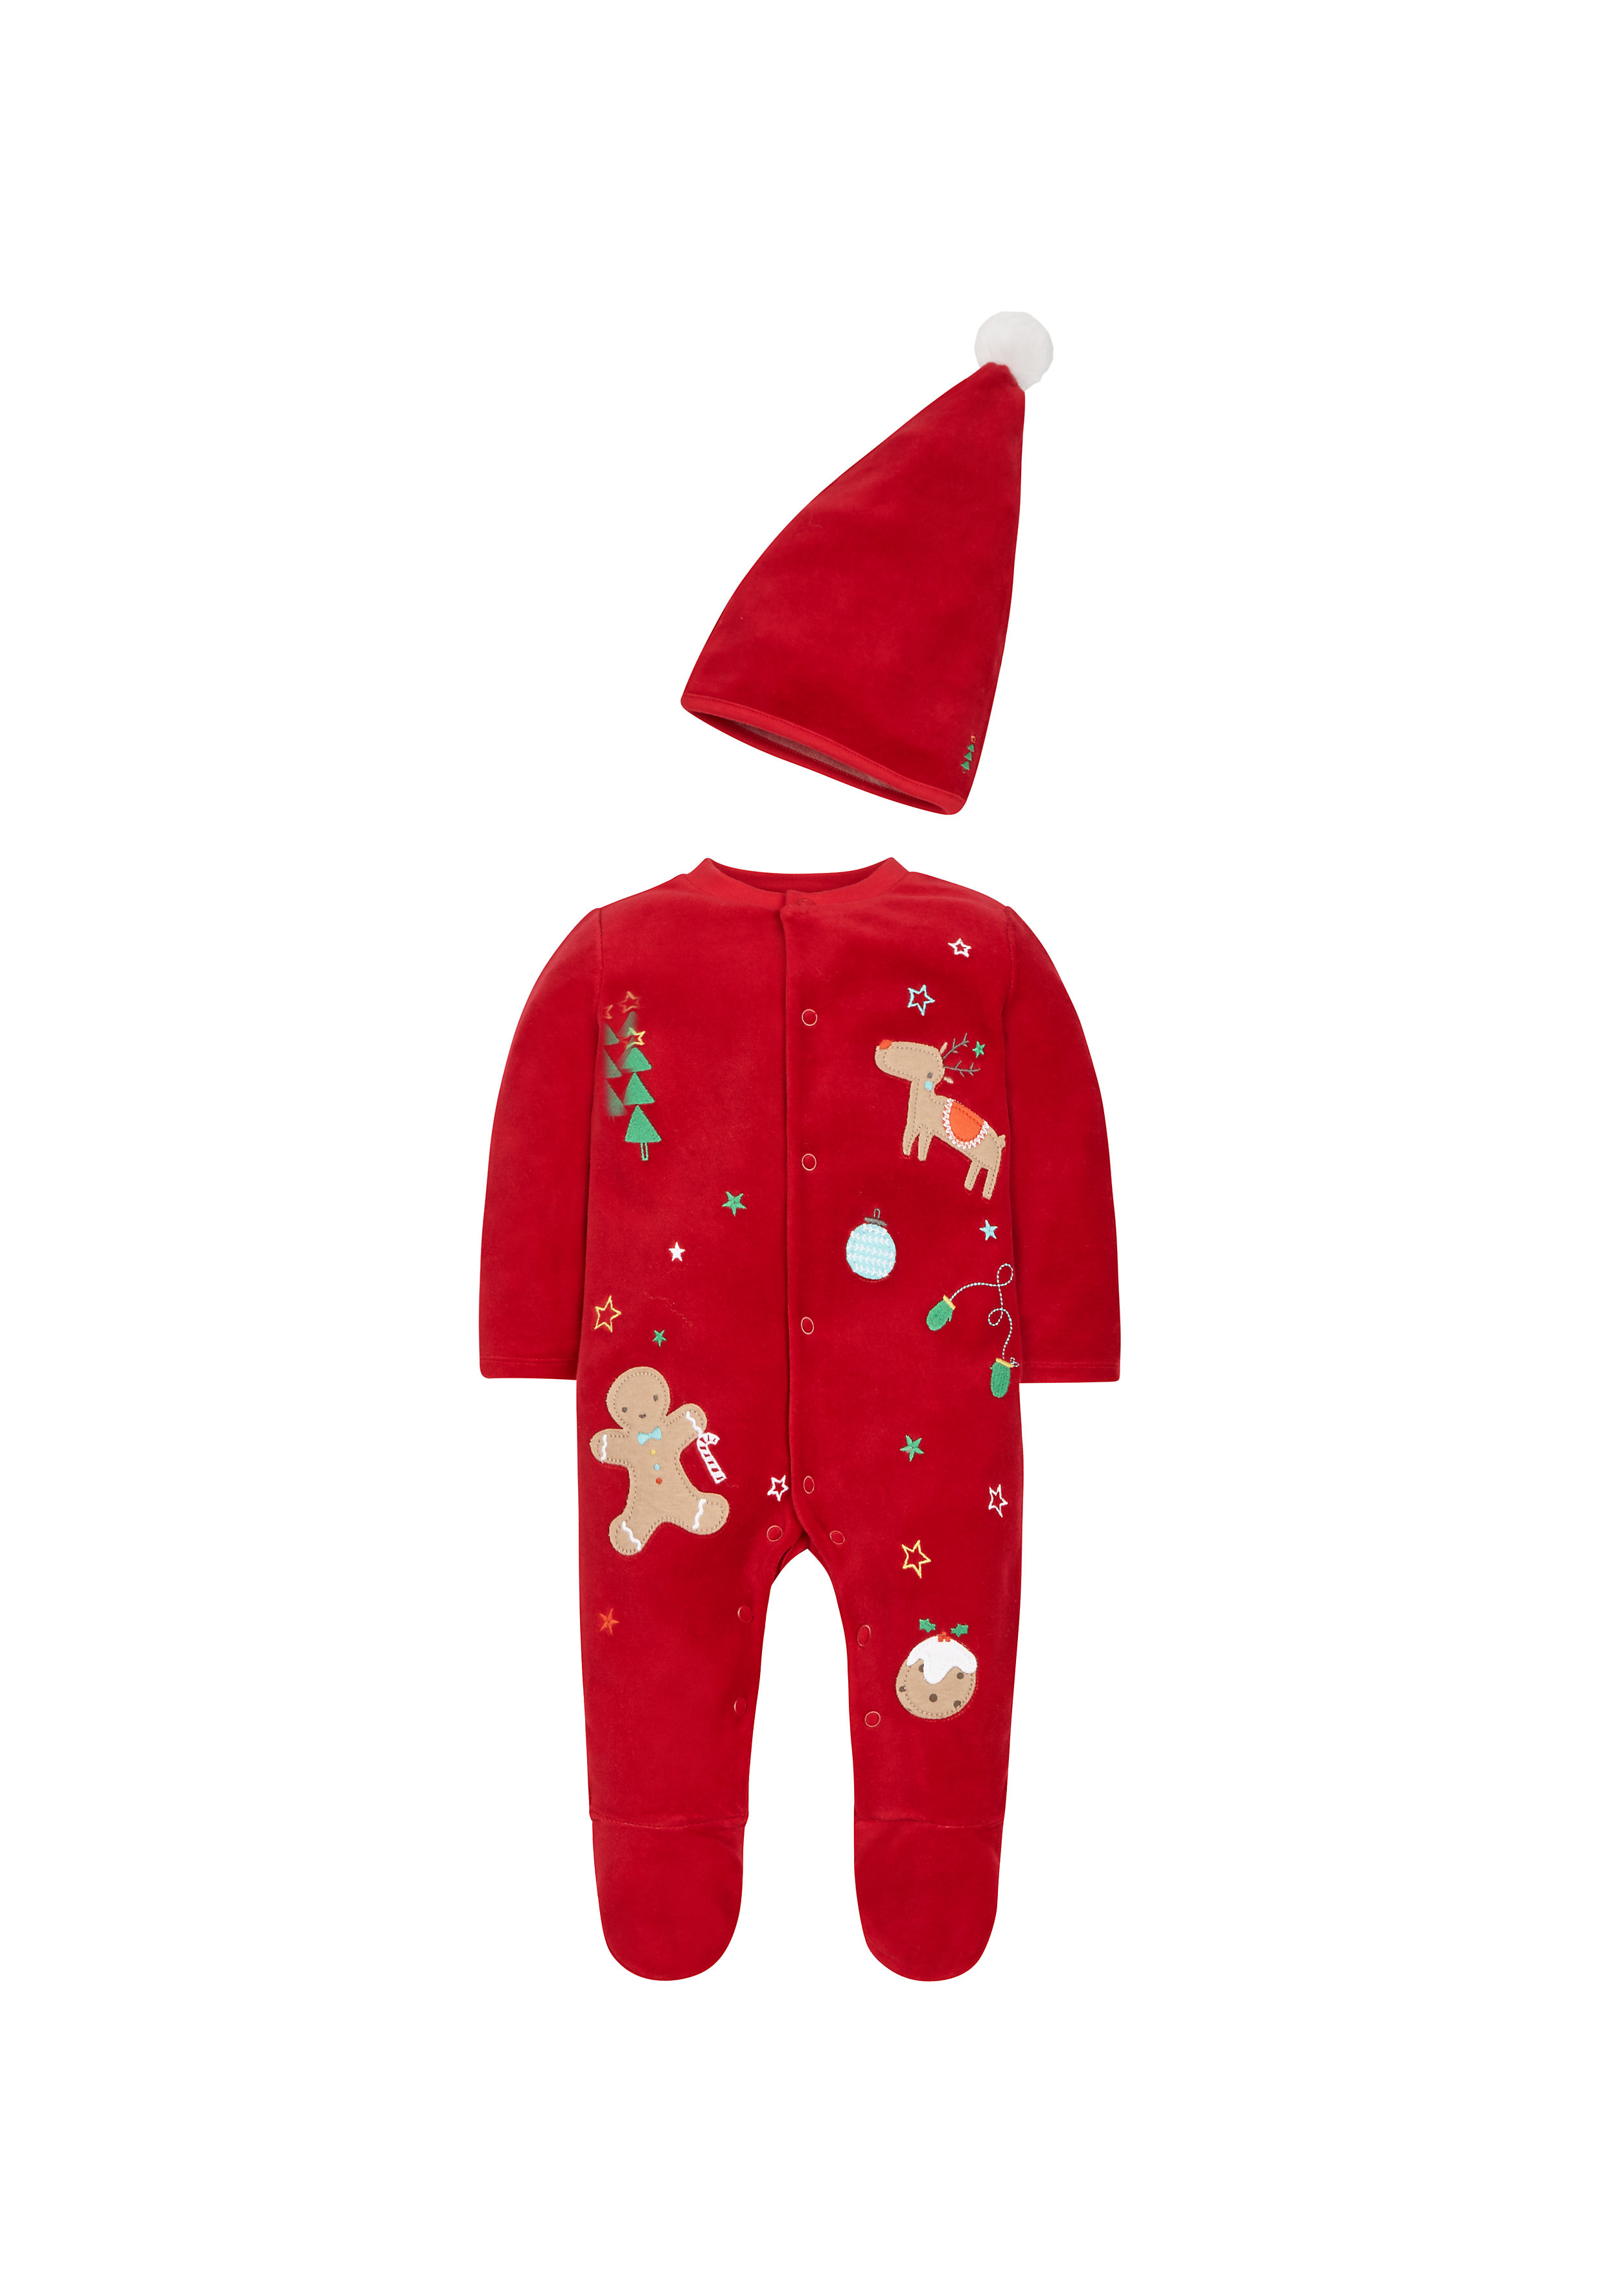 Mothercare | Unisex Full Sleeves Sleepsuit And Hat Christmas Design - Red